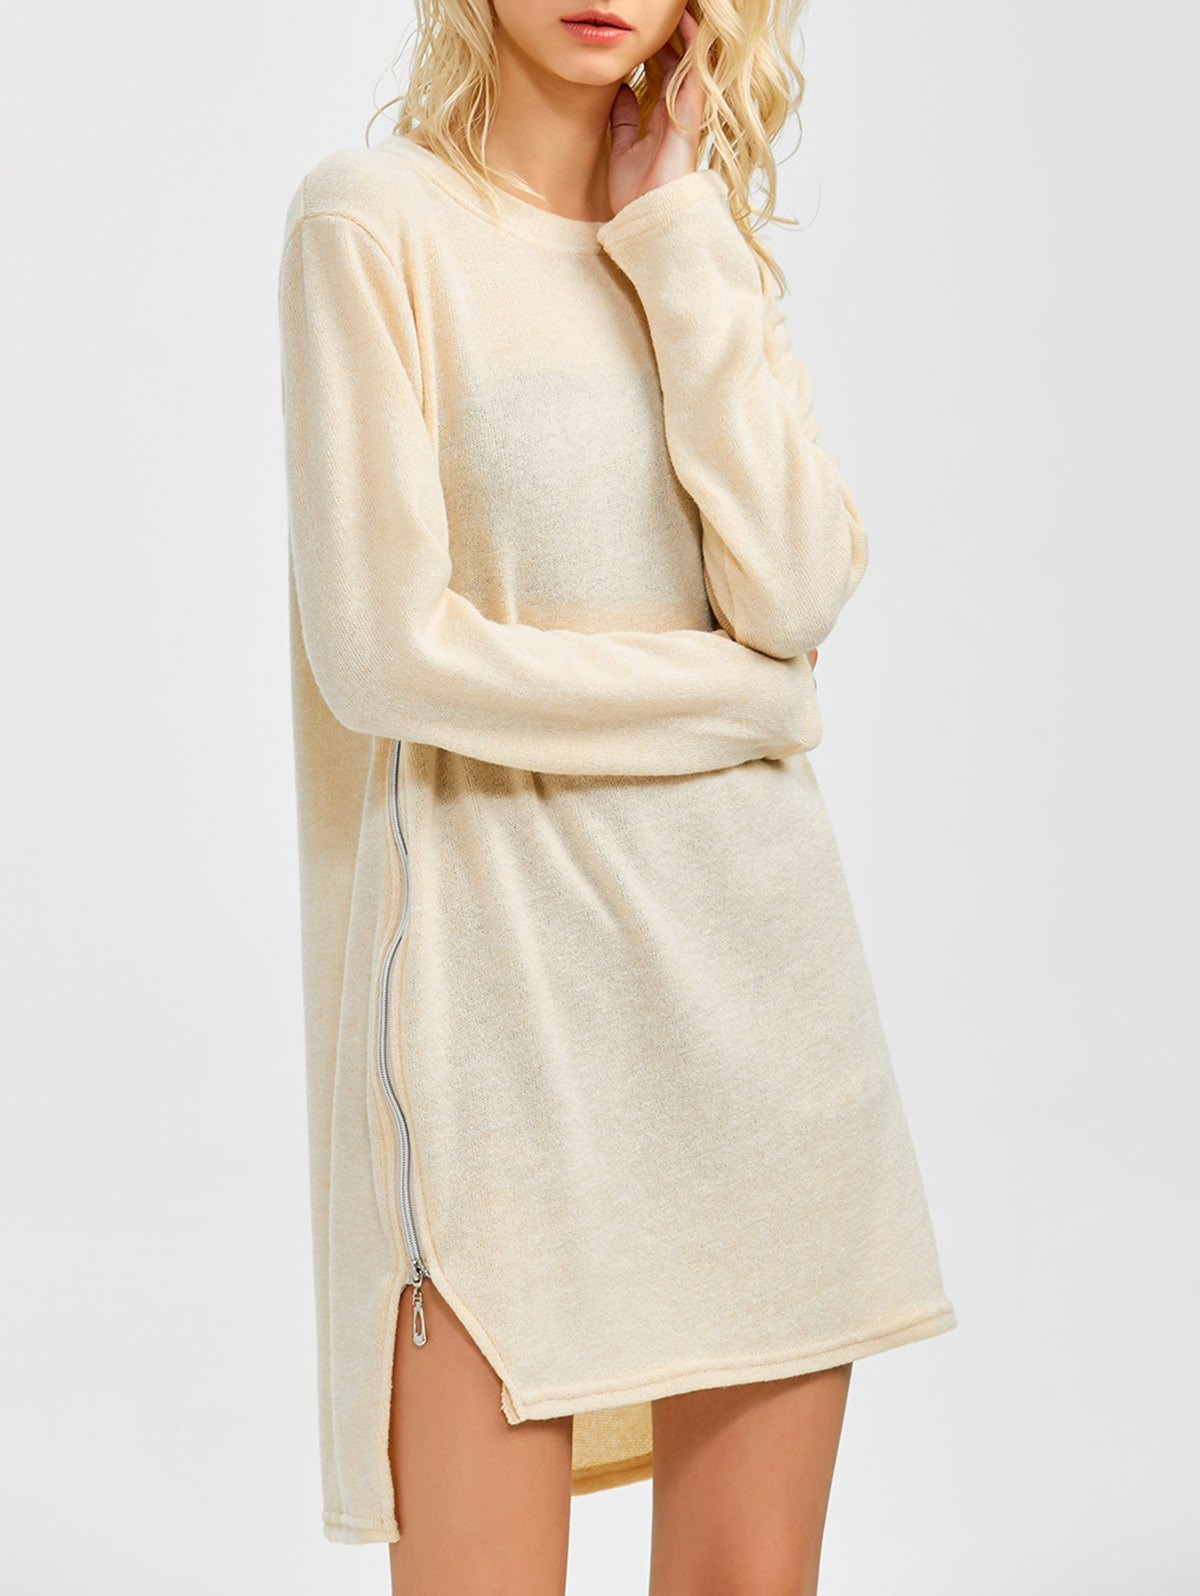 Side Zipper Sweater Dress - BEIGE S